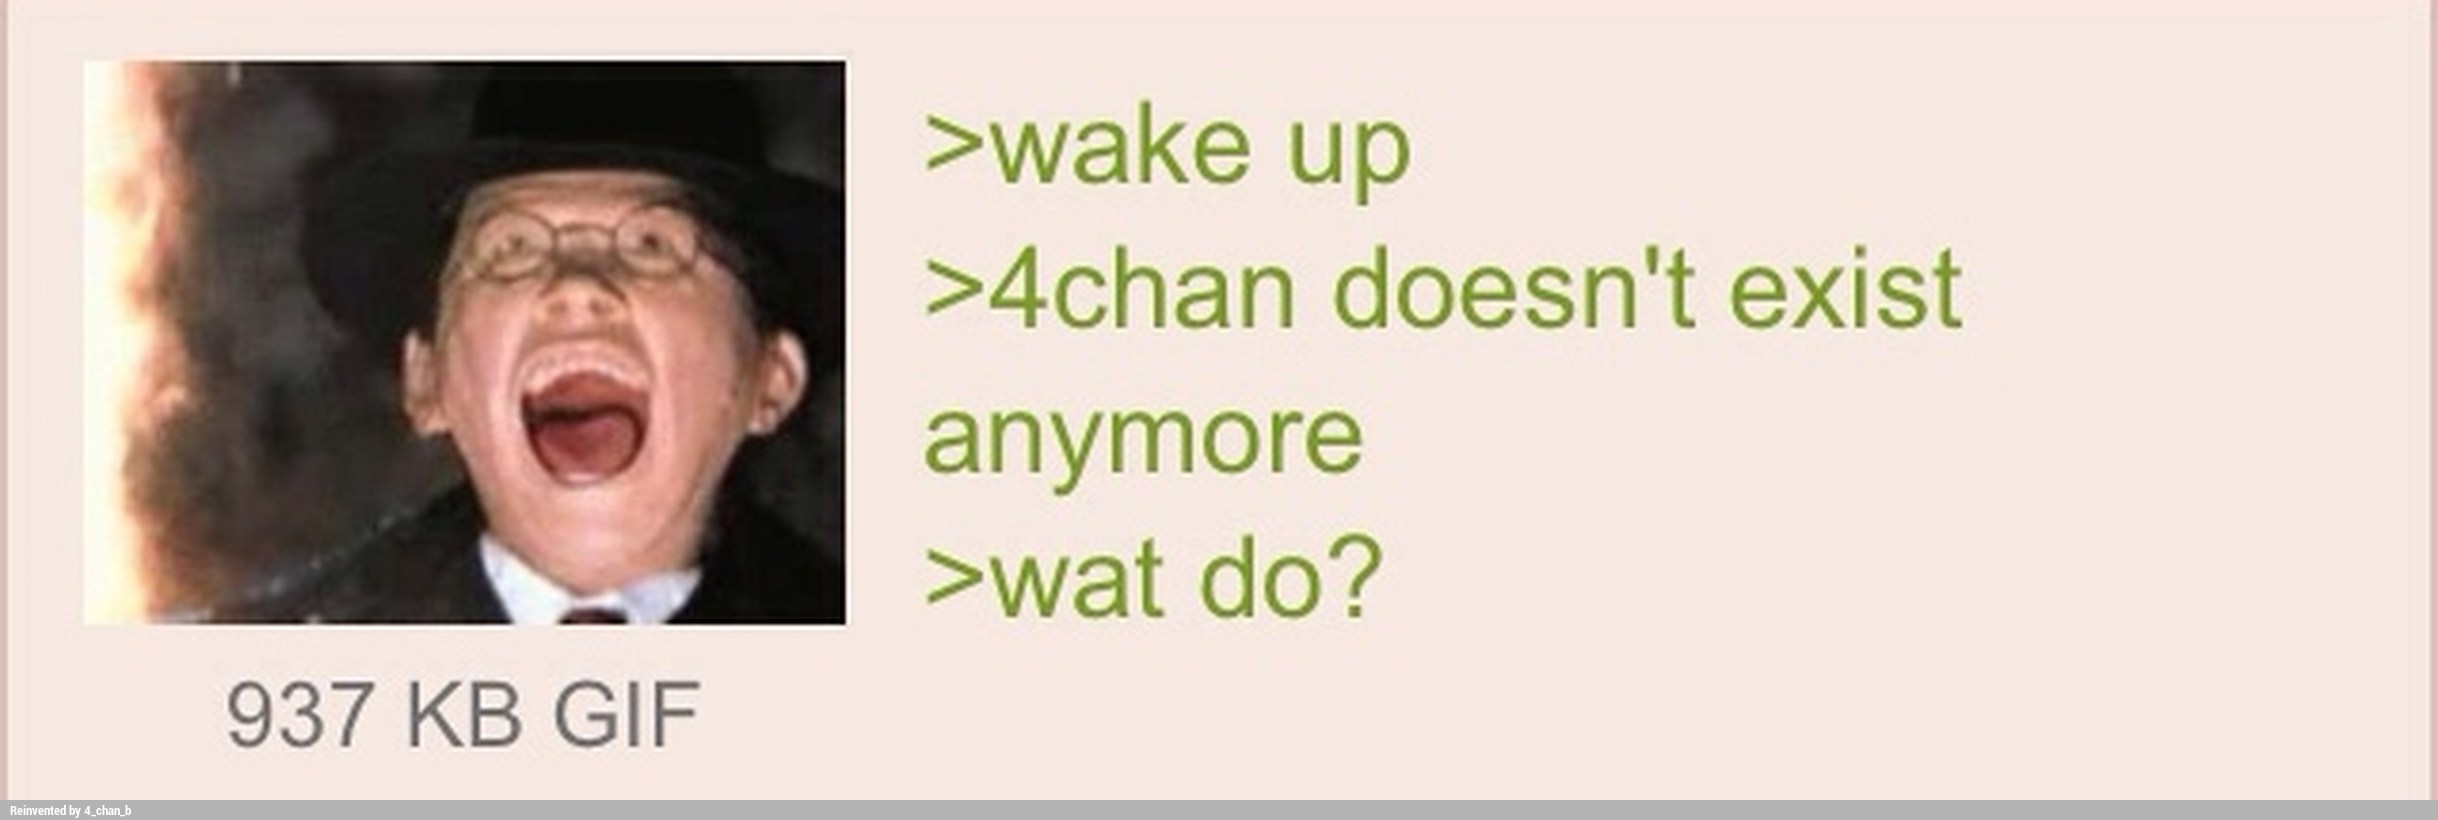 4Chan Gif 937 kb gif >wake up >4chan doesn't exist anymore - ifunny :)